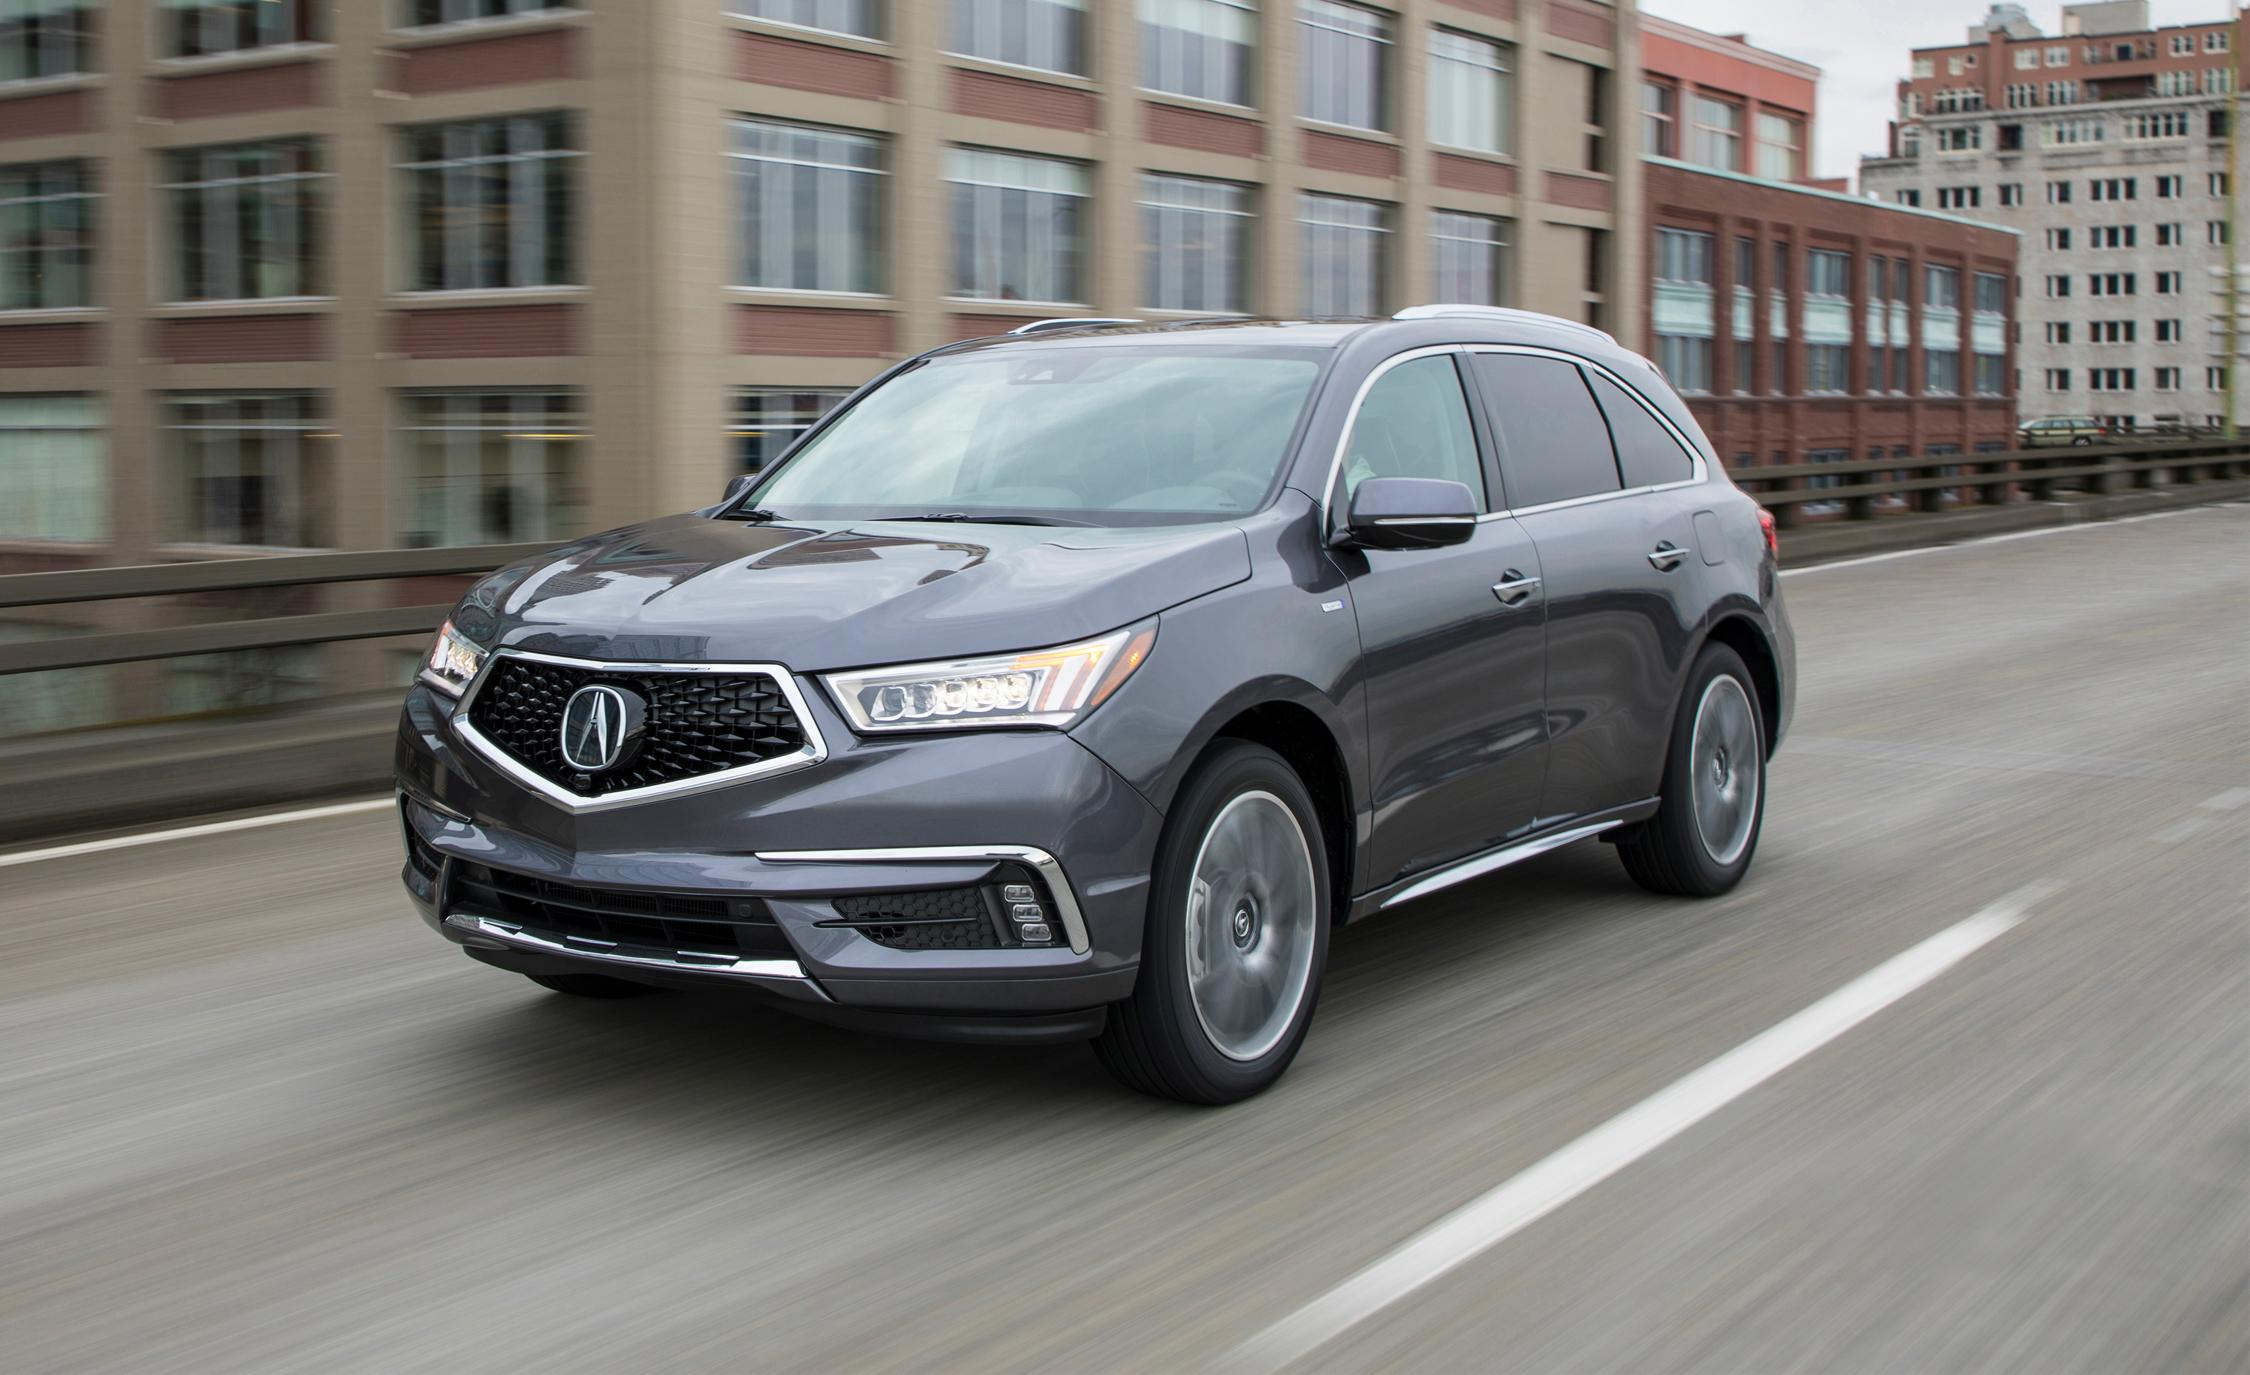 2017 acura mdx sport hybrid. Black Bedroom Furniture Sets. Home Design Ideas